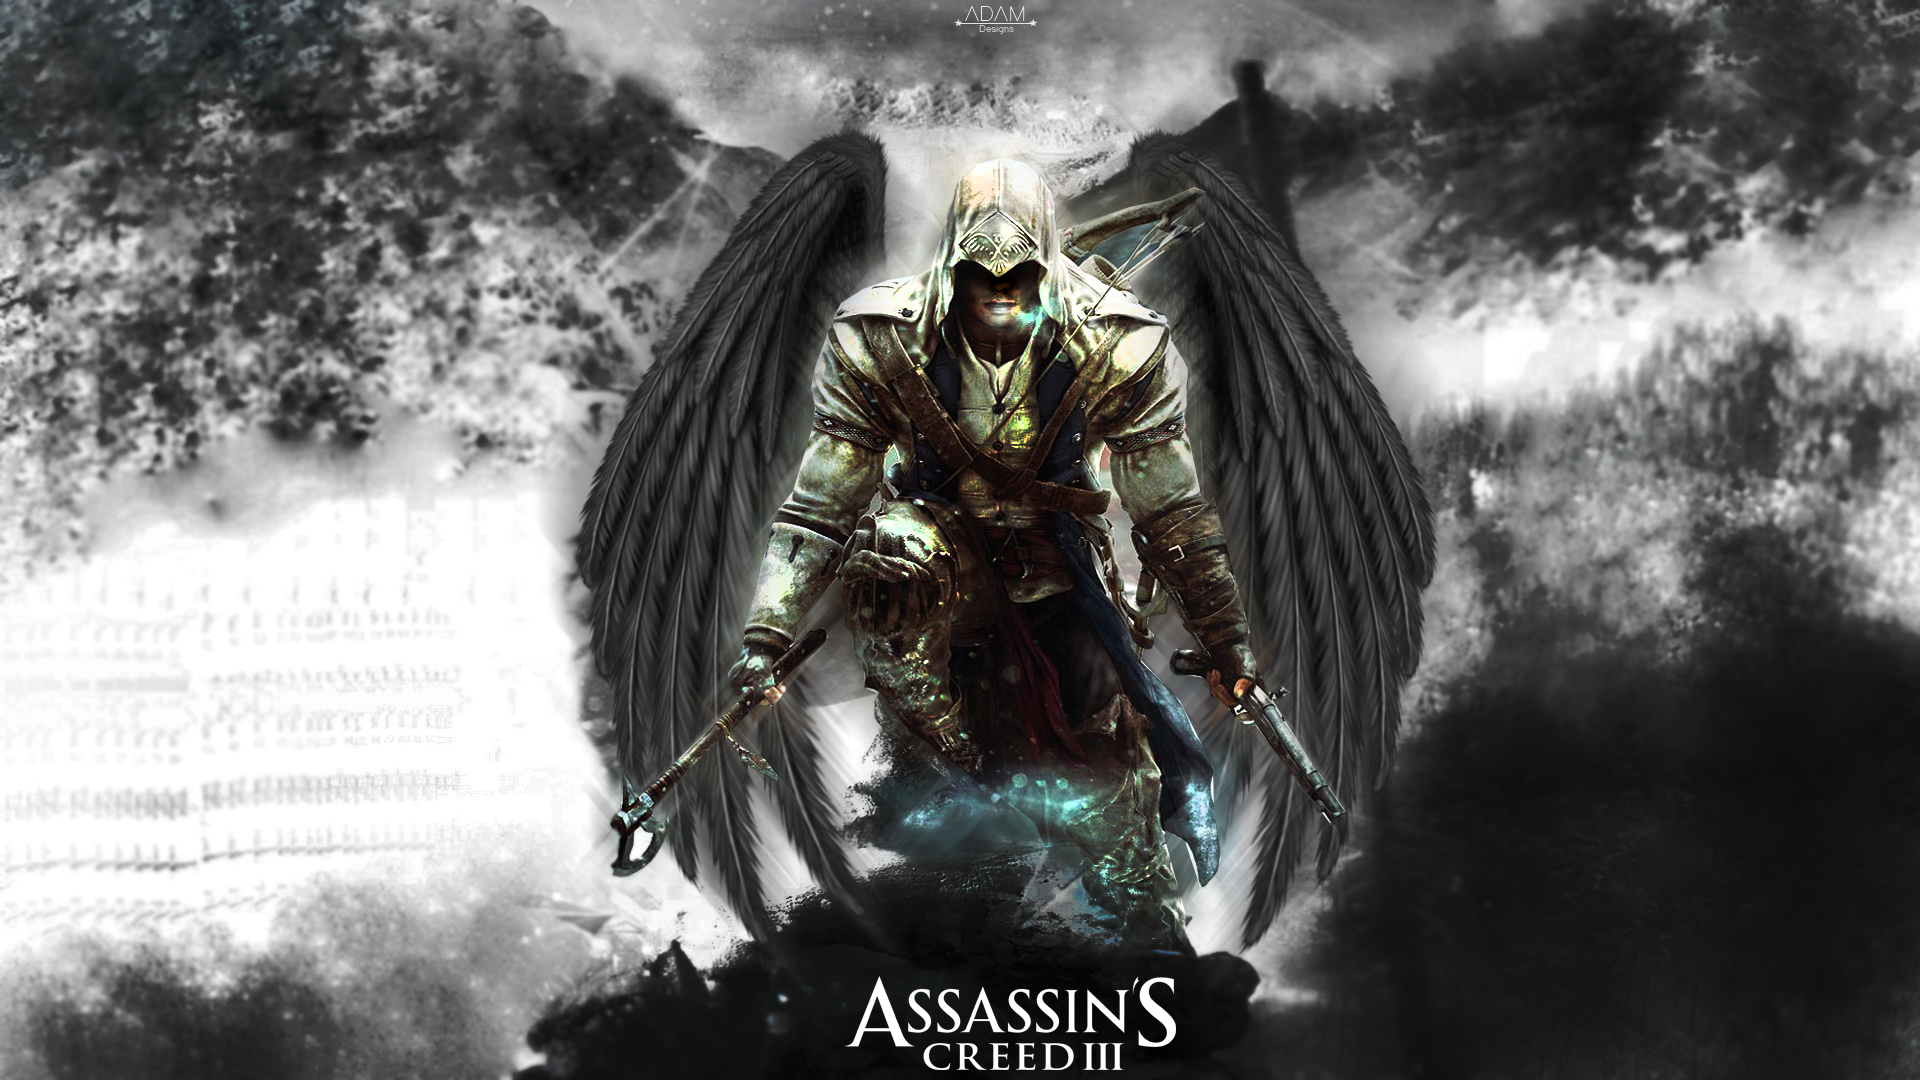 Assassins Creed 3 Wallpaper Posted By Christopher Peltier